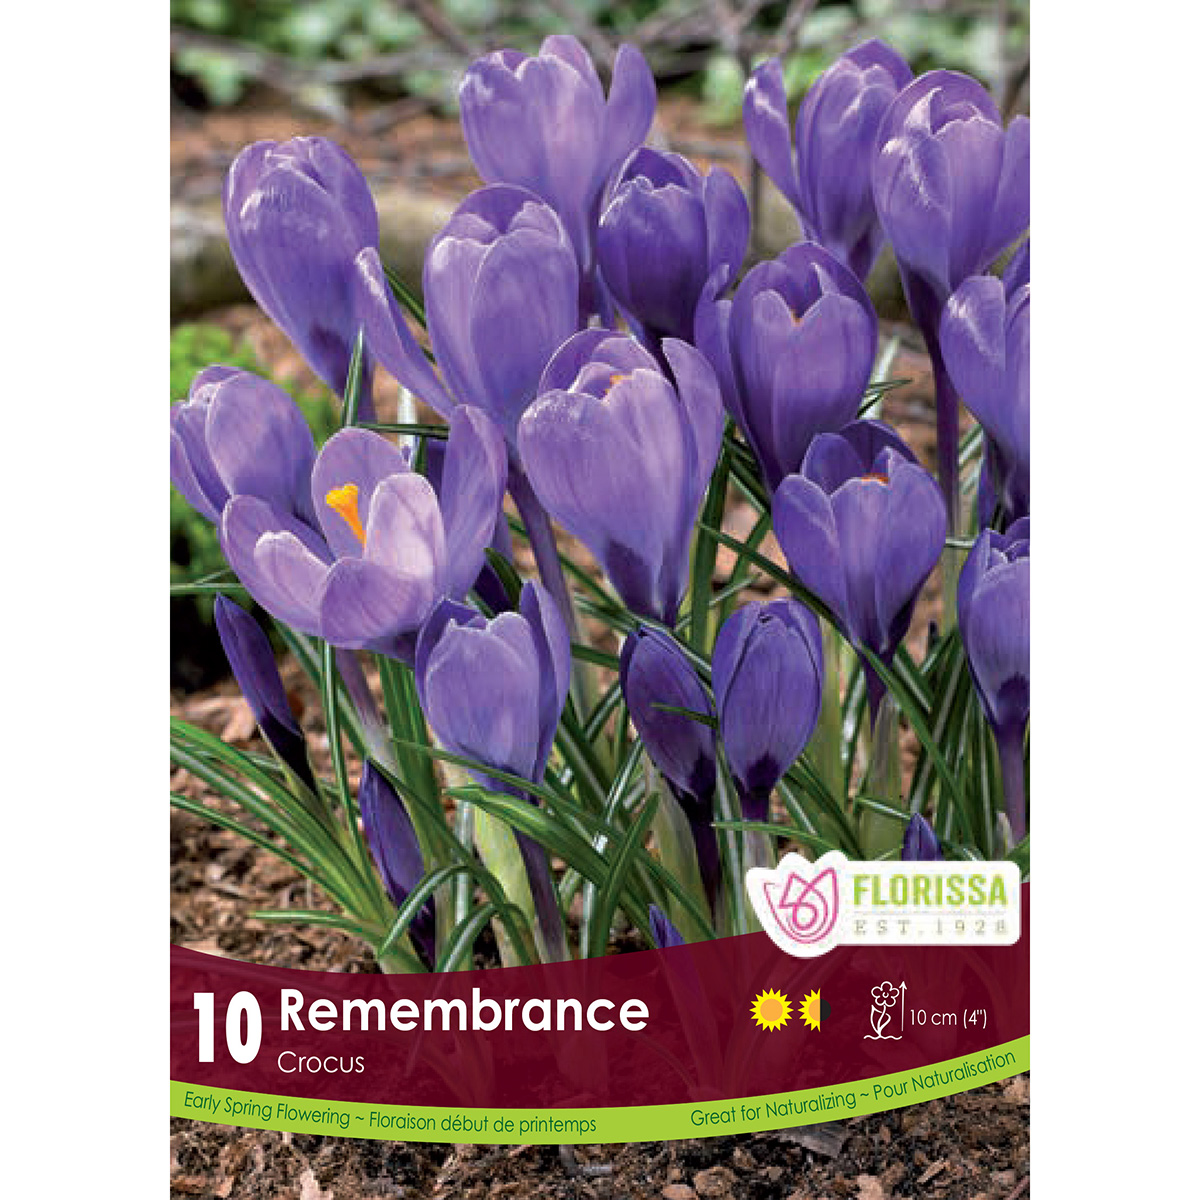 Crocus 'Remembrance' Bulbs